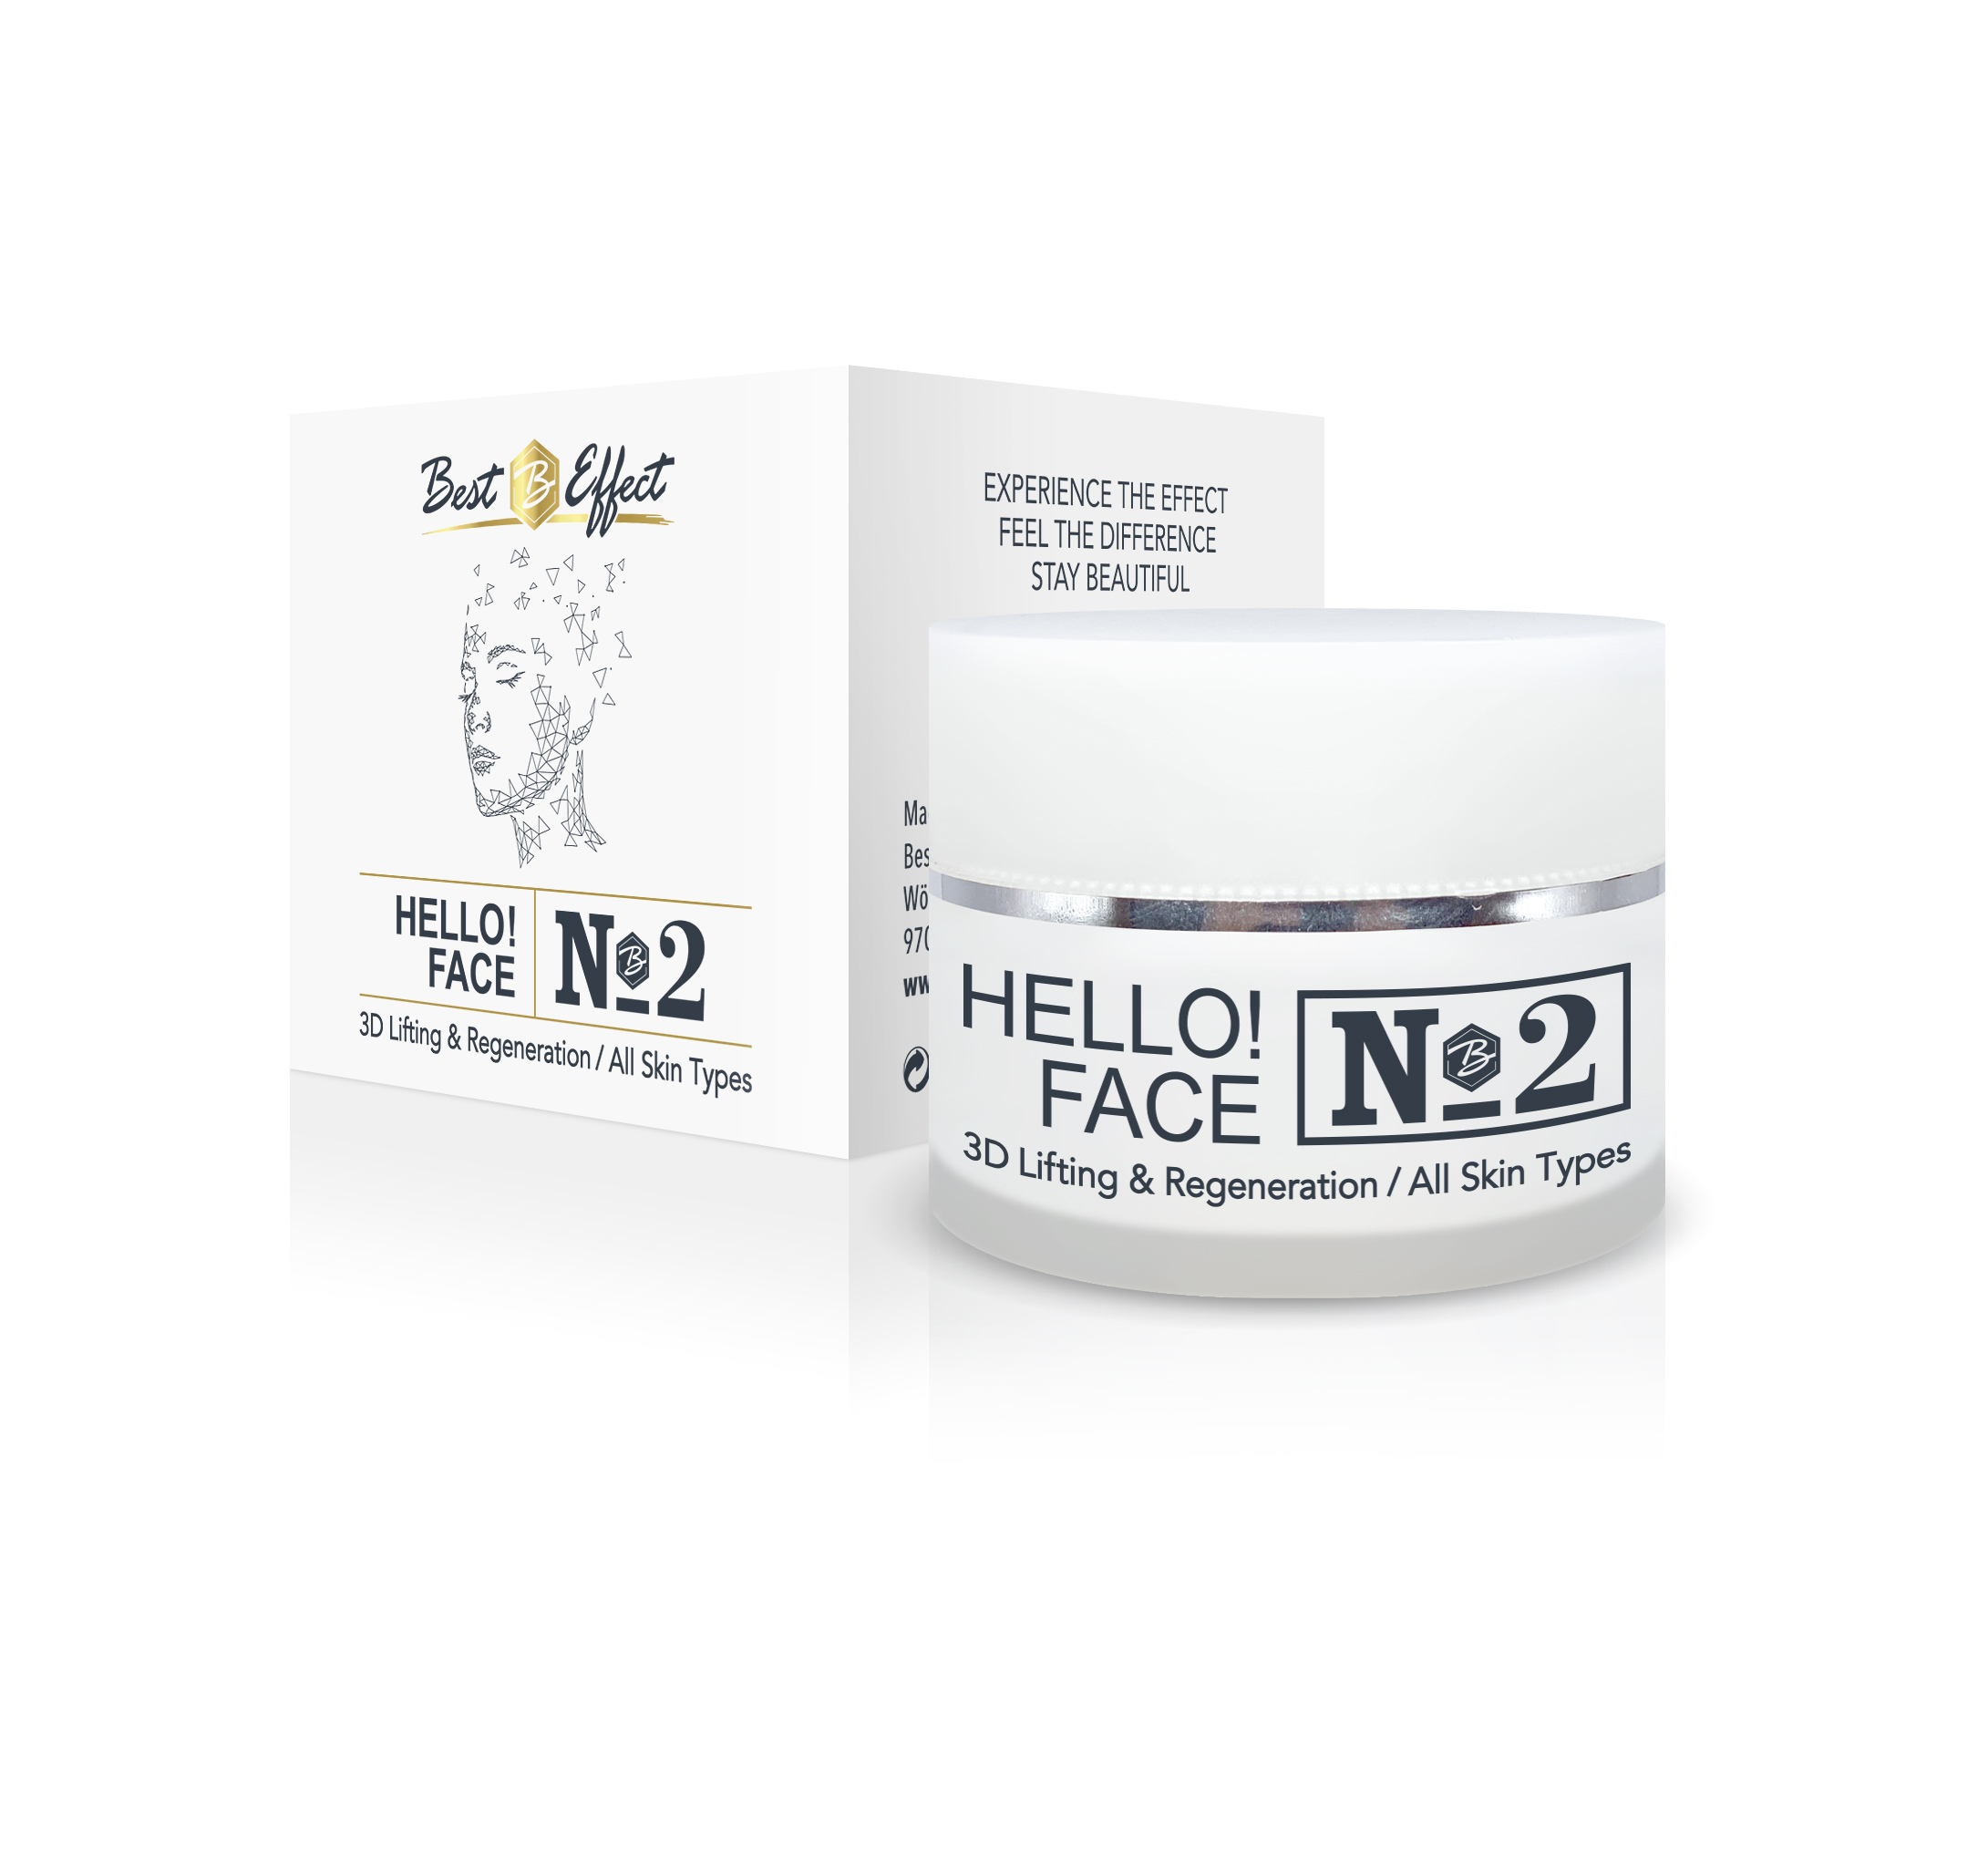 Hello!Face N2 3D Lifting & Regeneration / All Skin Types